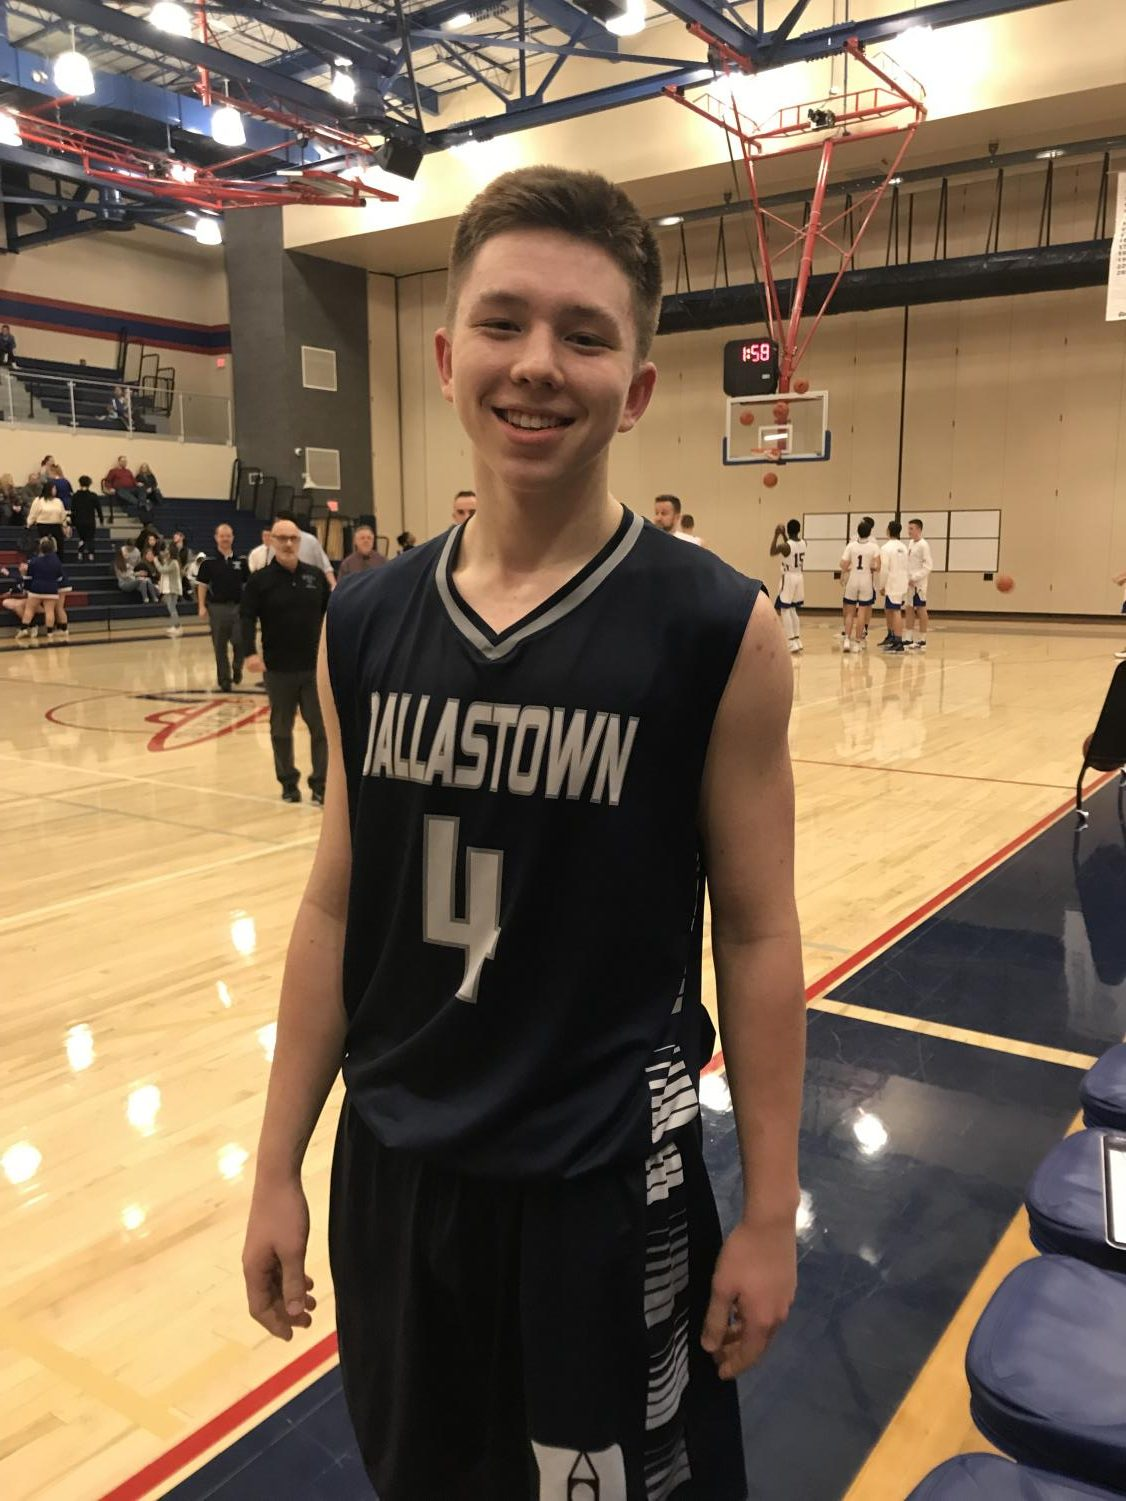 Dallastown junior Nike McGlynn is the youngest member of a prominent Dallastown basketball  family, but if you ask him, he plays because he loves it.